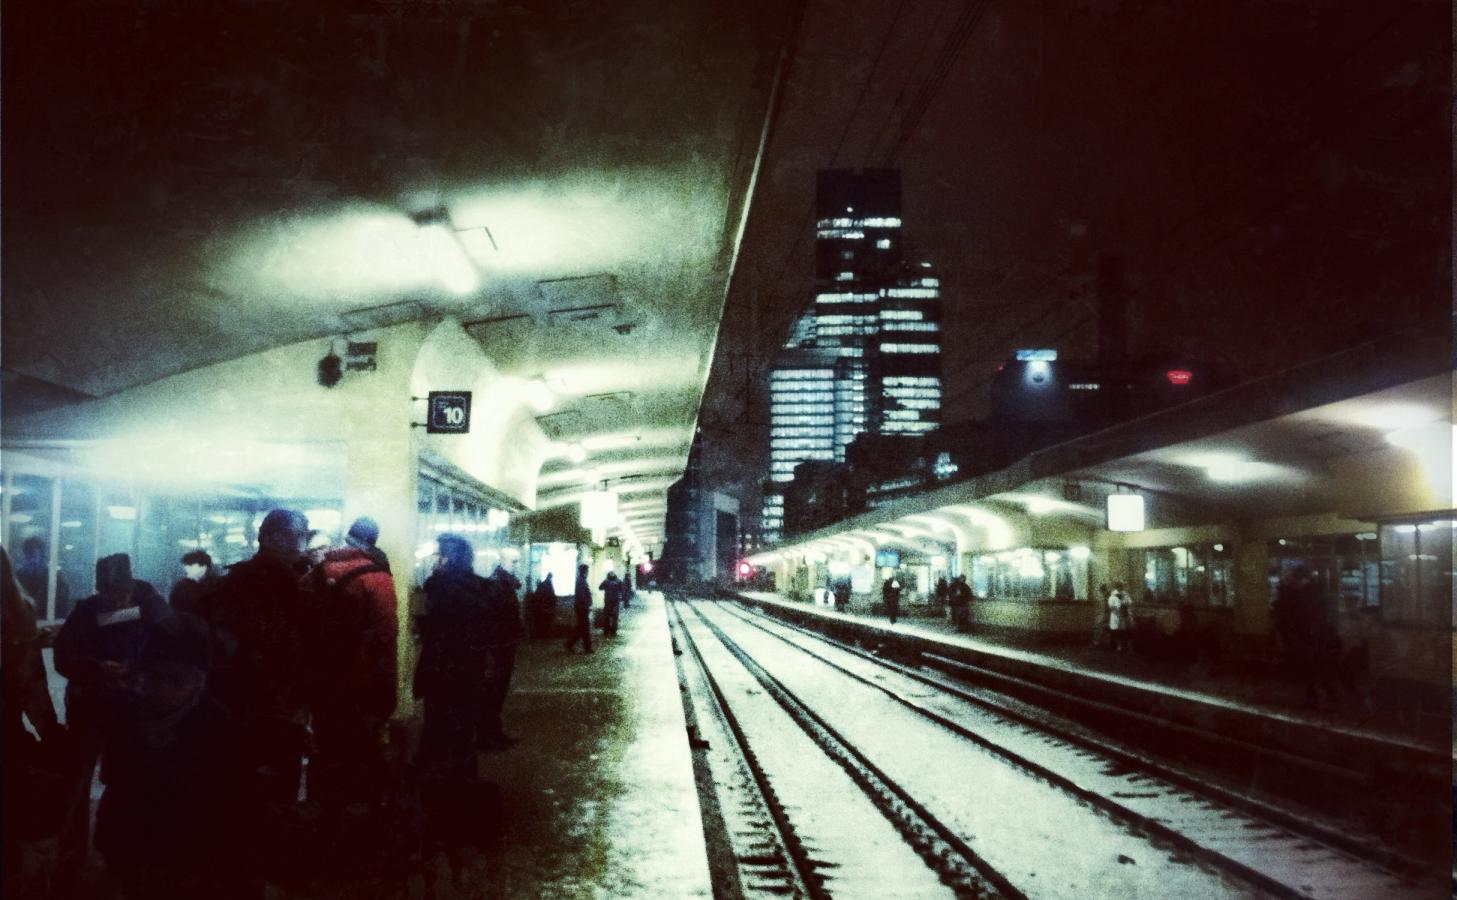 gare-du-nord-with-snow-bruxelles-2012